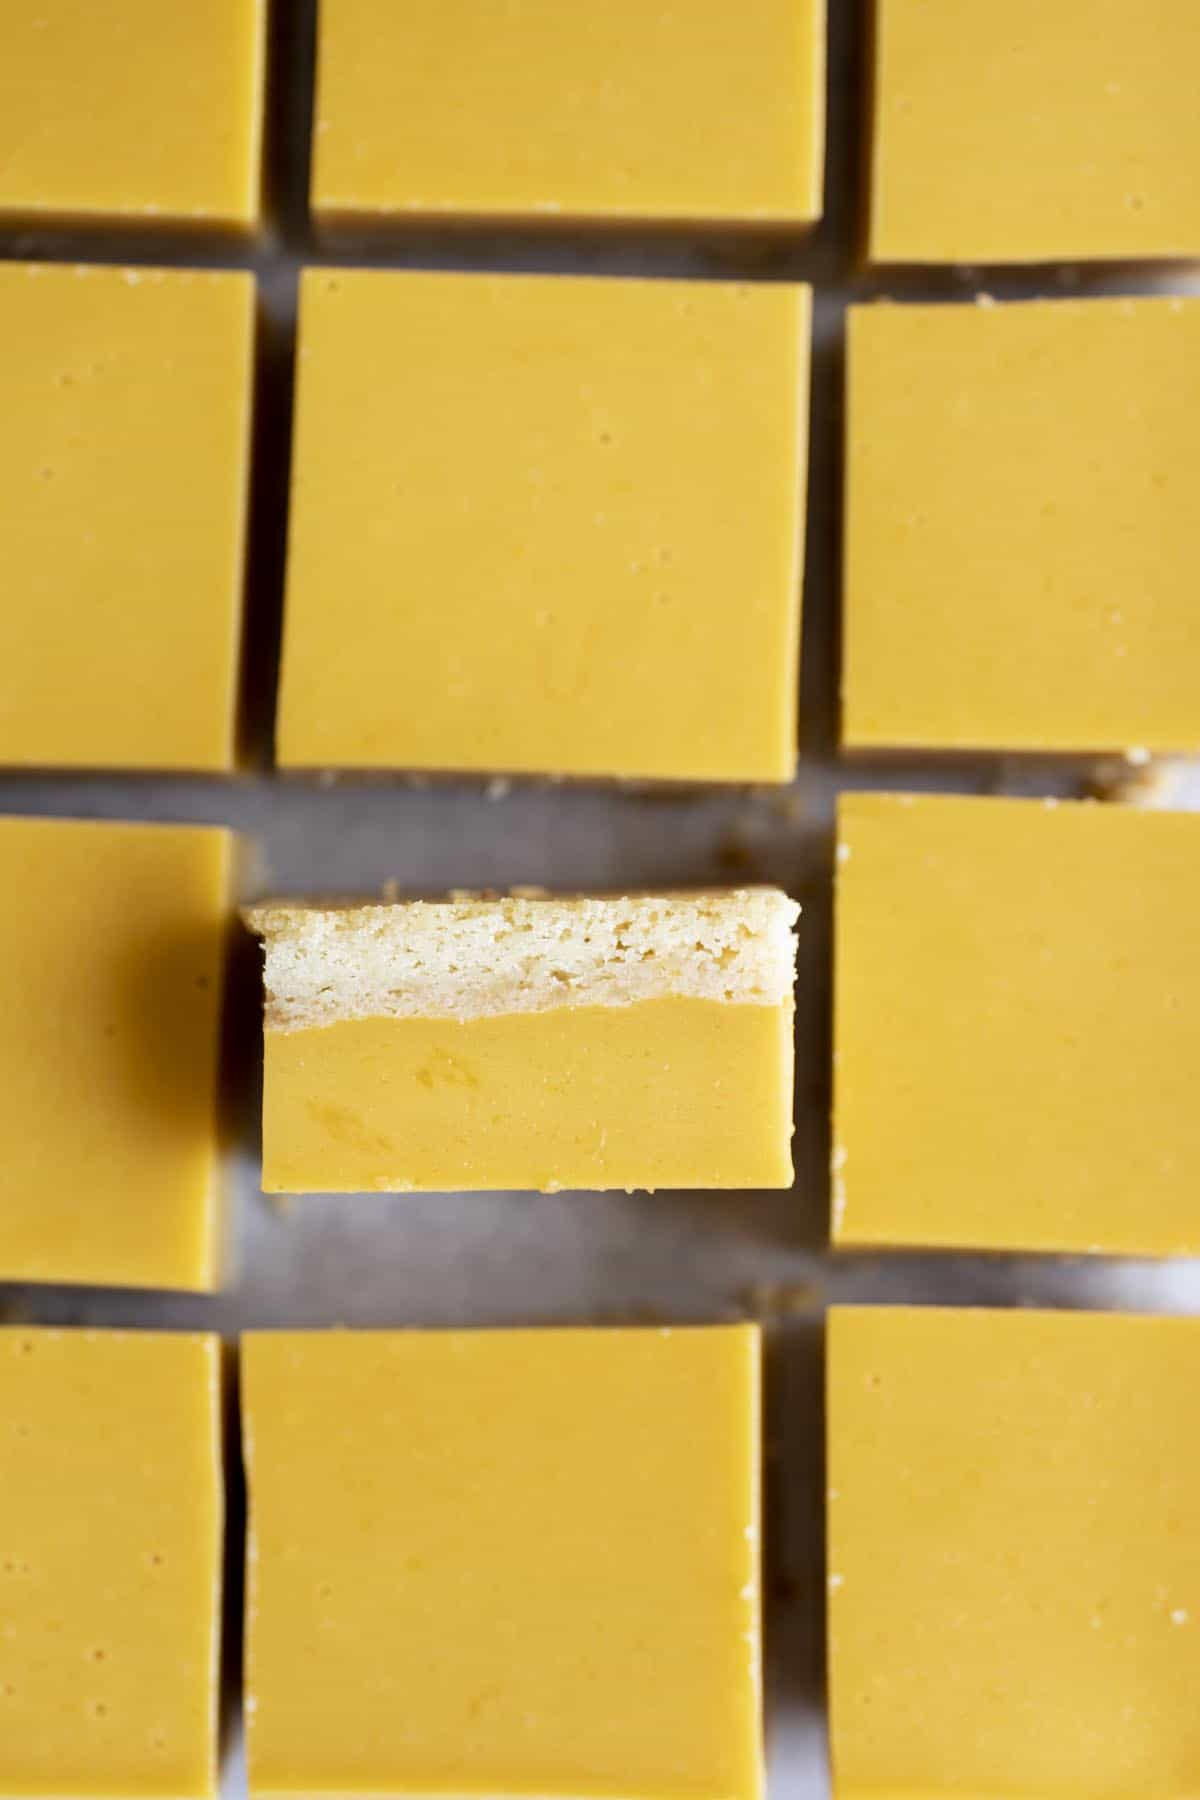 A flat lay photo of mango bars, one bar is standing up on its side.